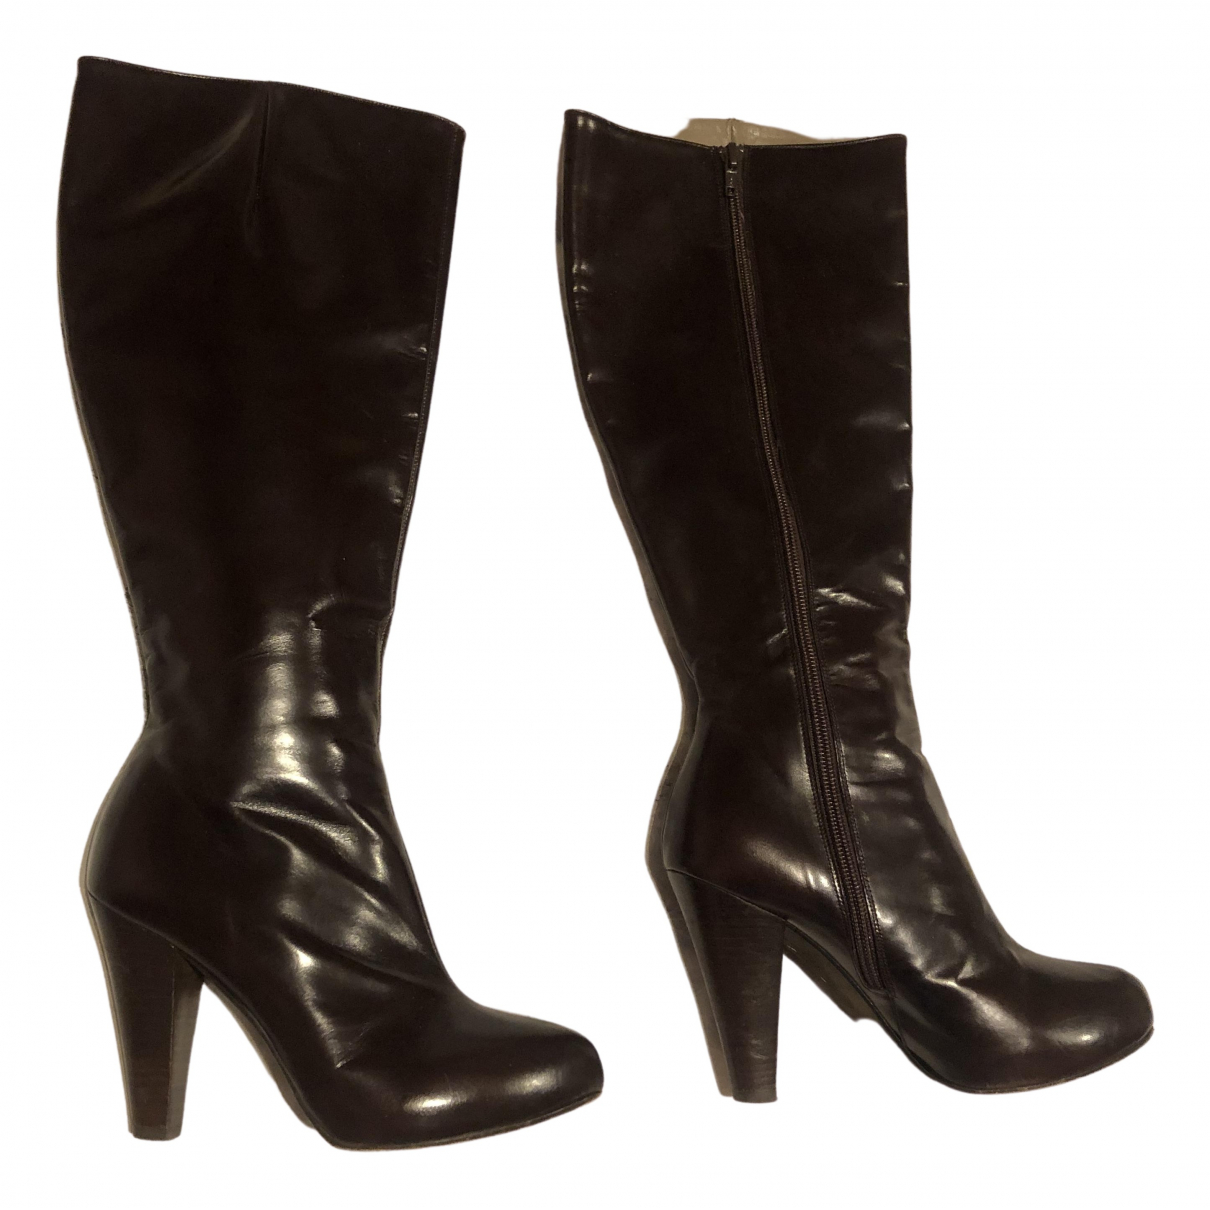 Tommy Hilfiger \N Brown Patent leather Boots for Women 36 EU